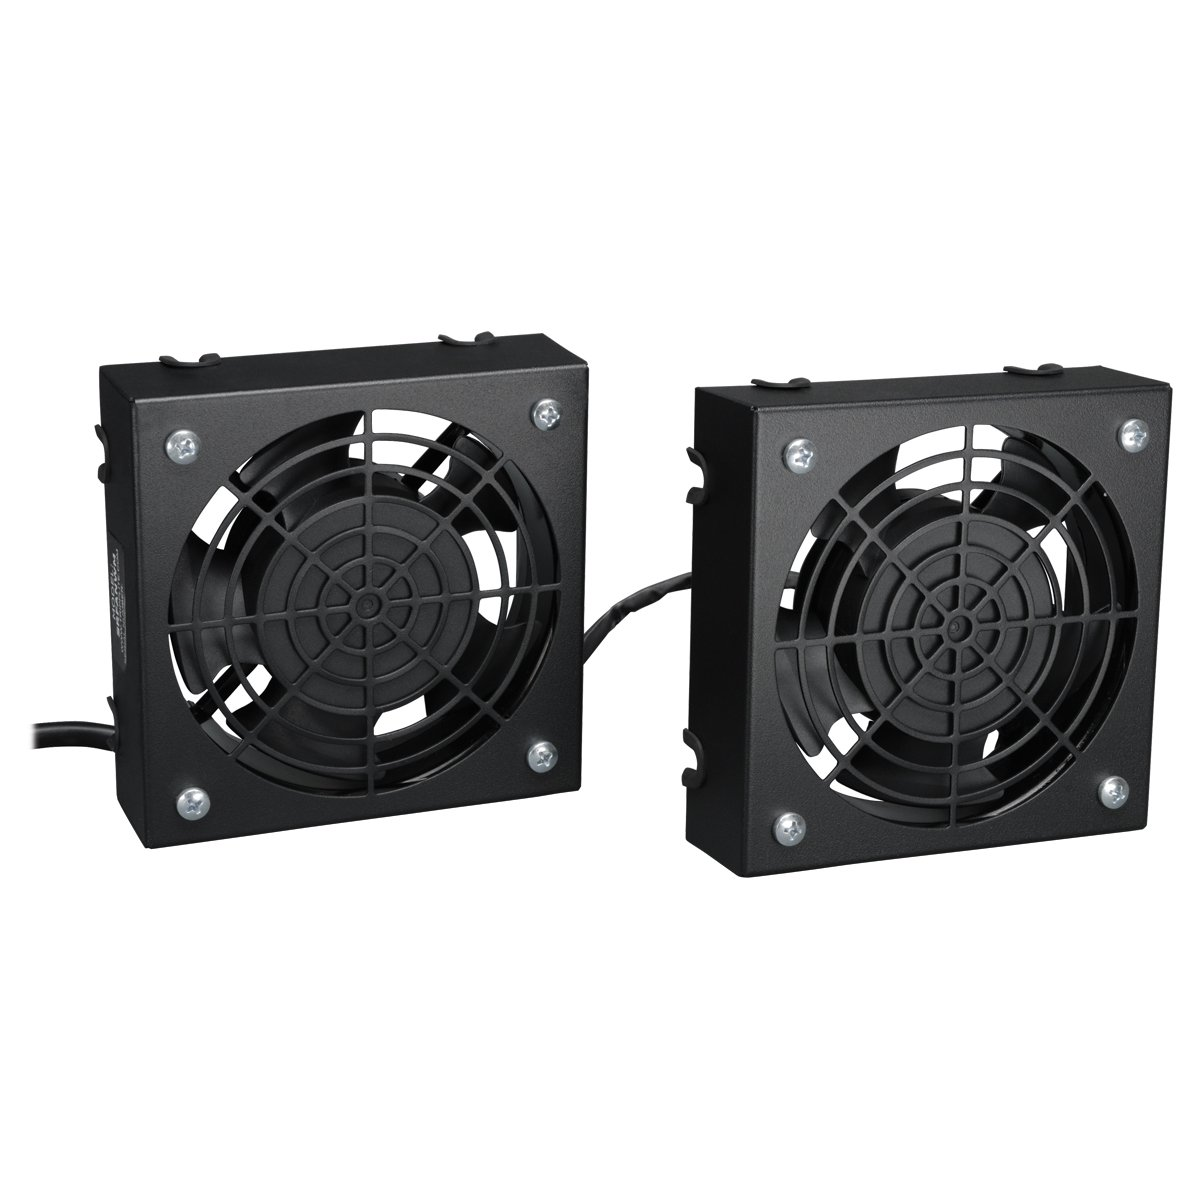 Tripp Lite Wall-Mount Roof Fan Kit, 2 High-Performance Fans, 120V, 210 CFM, 5-15P Plug (SRFANWM) by Tripp Lite